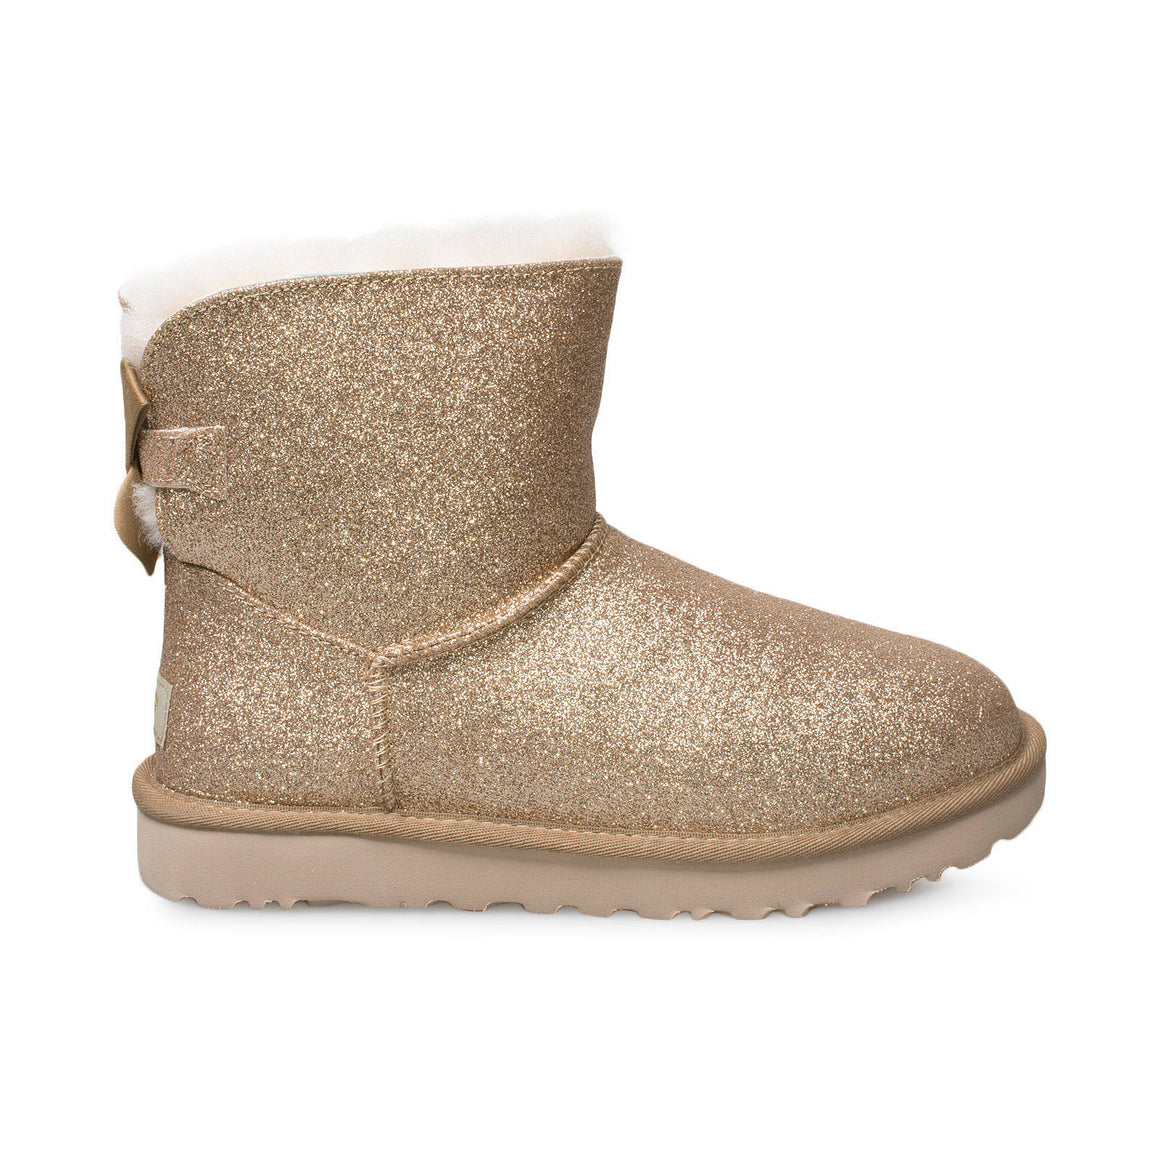 UGG Mini Bailey Bow Sparkle Gold Boots - Women's